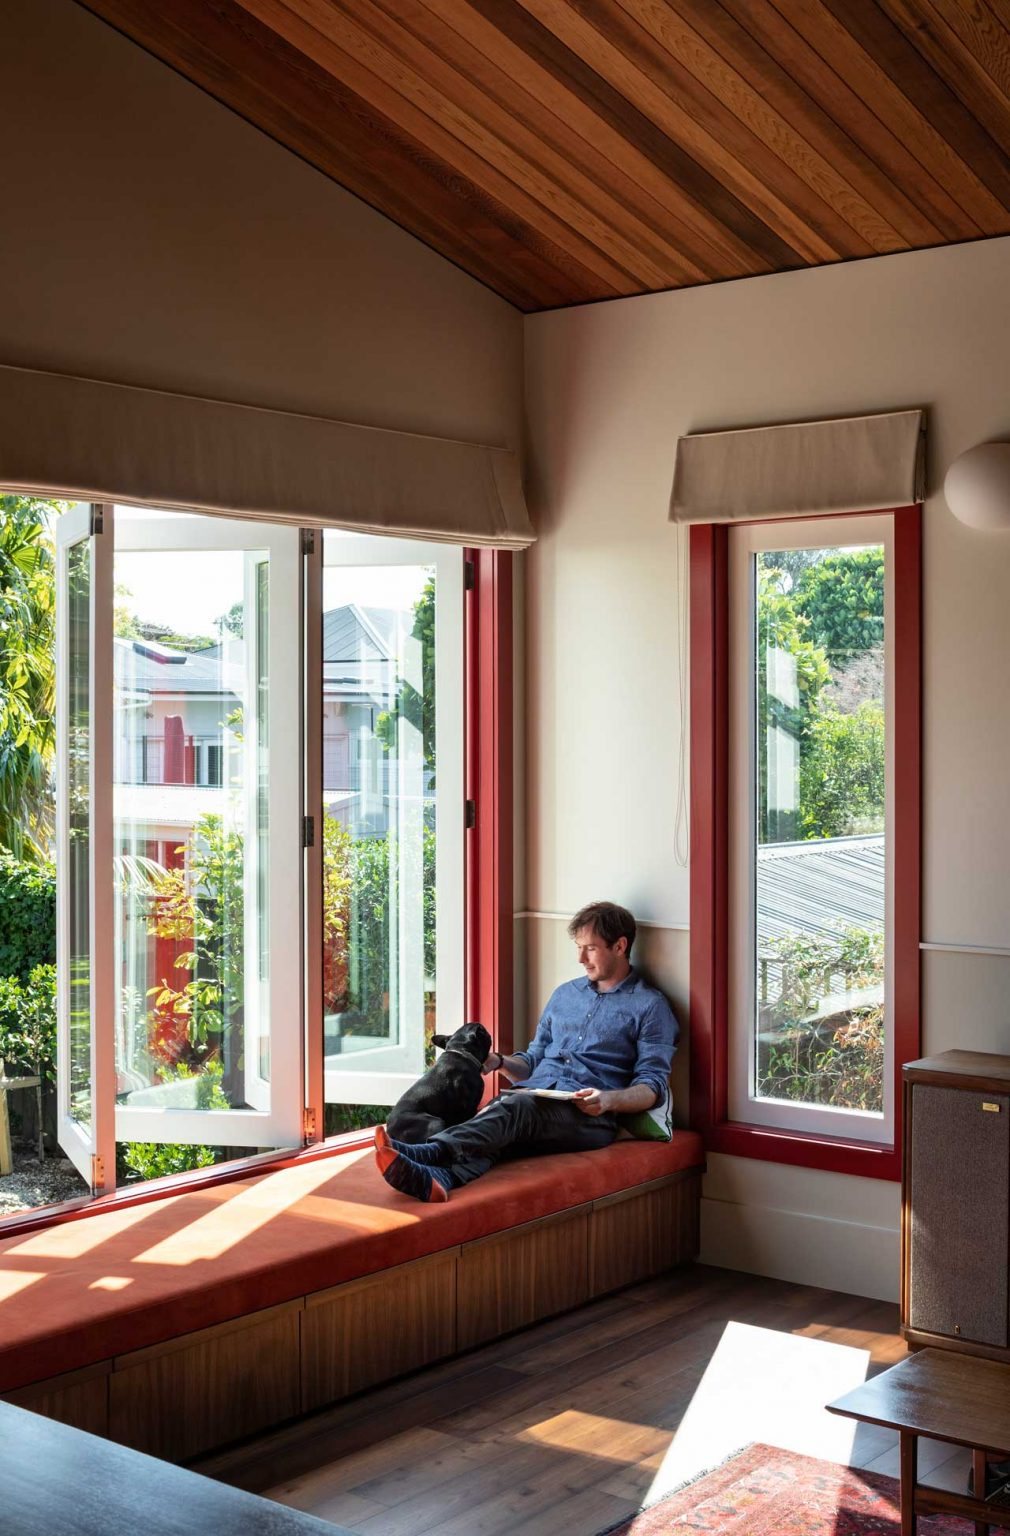 The window is done so that the owners can completely open this space to outdoors